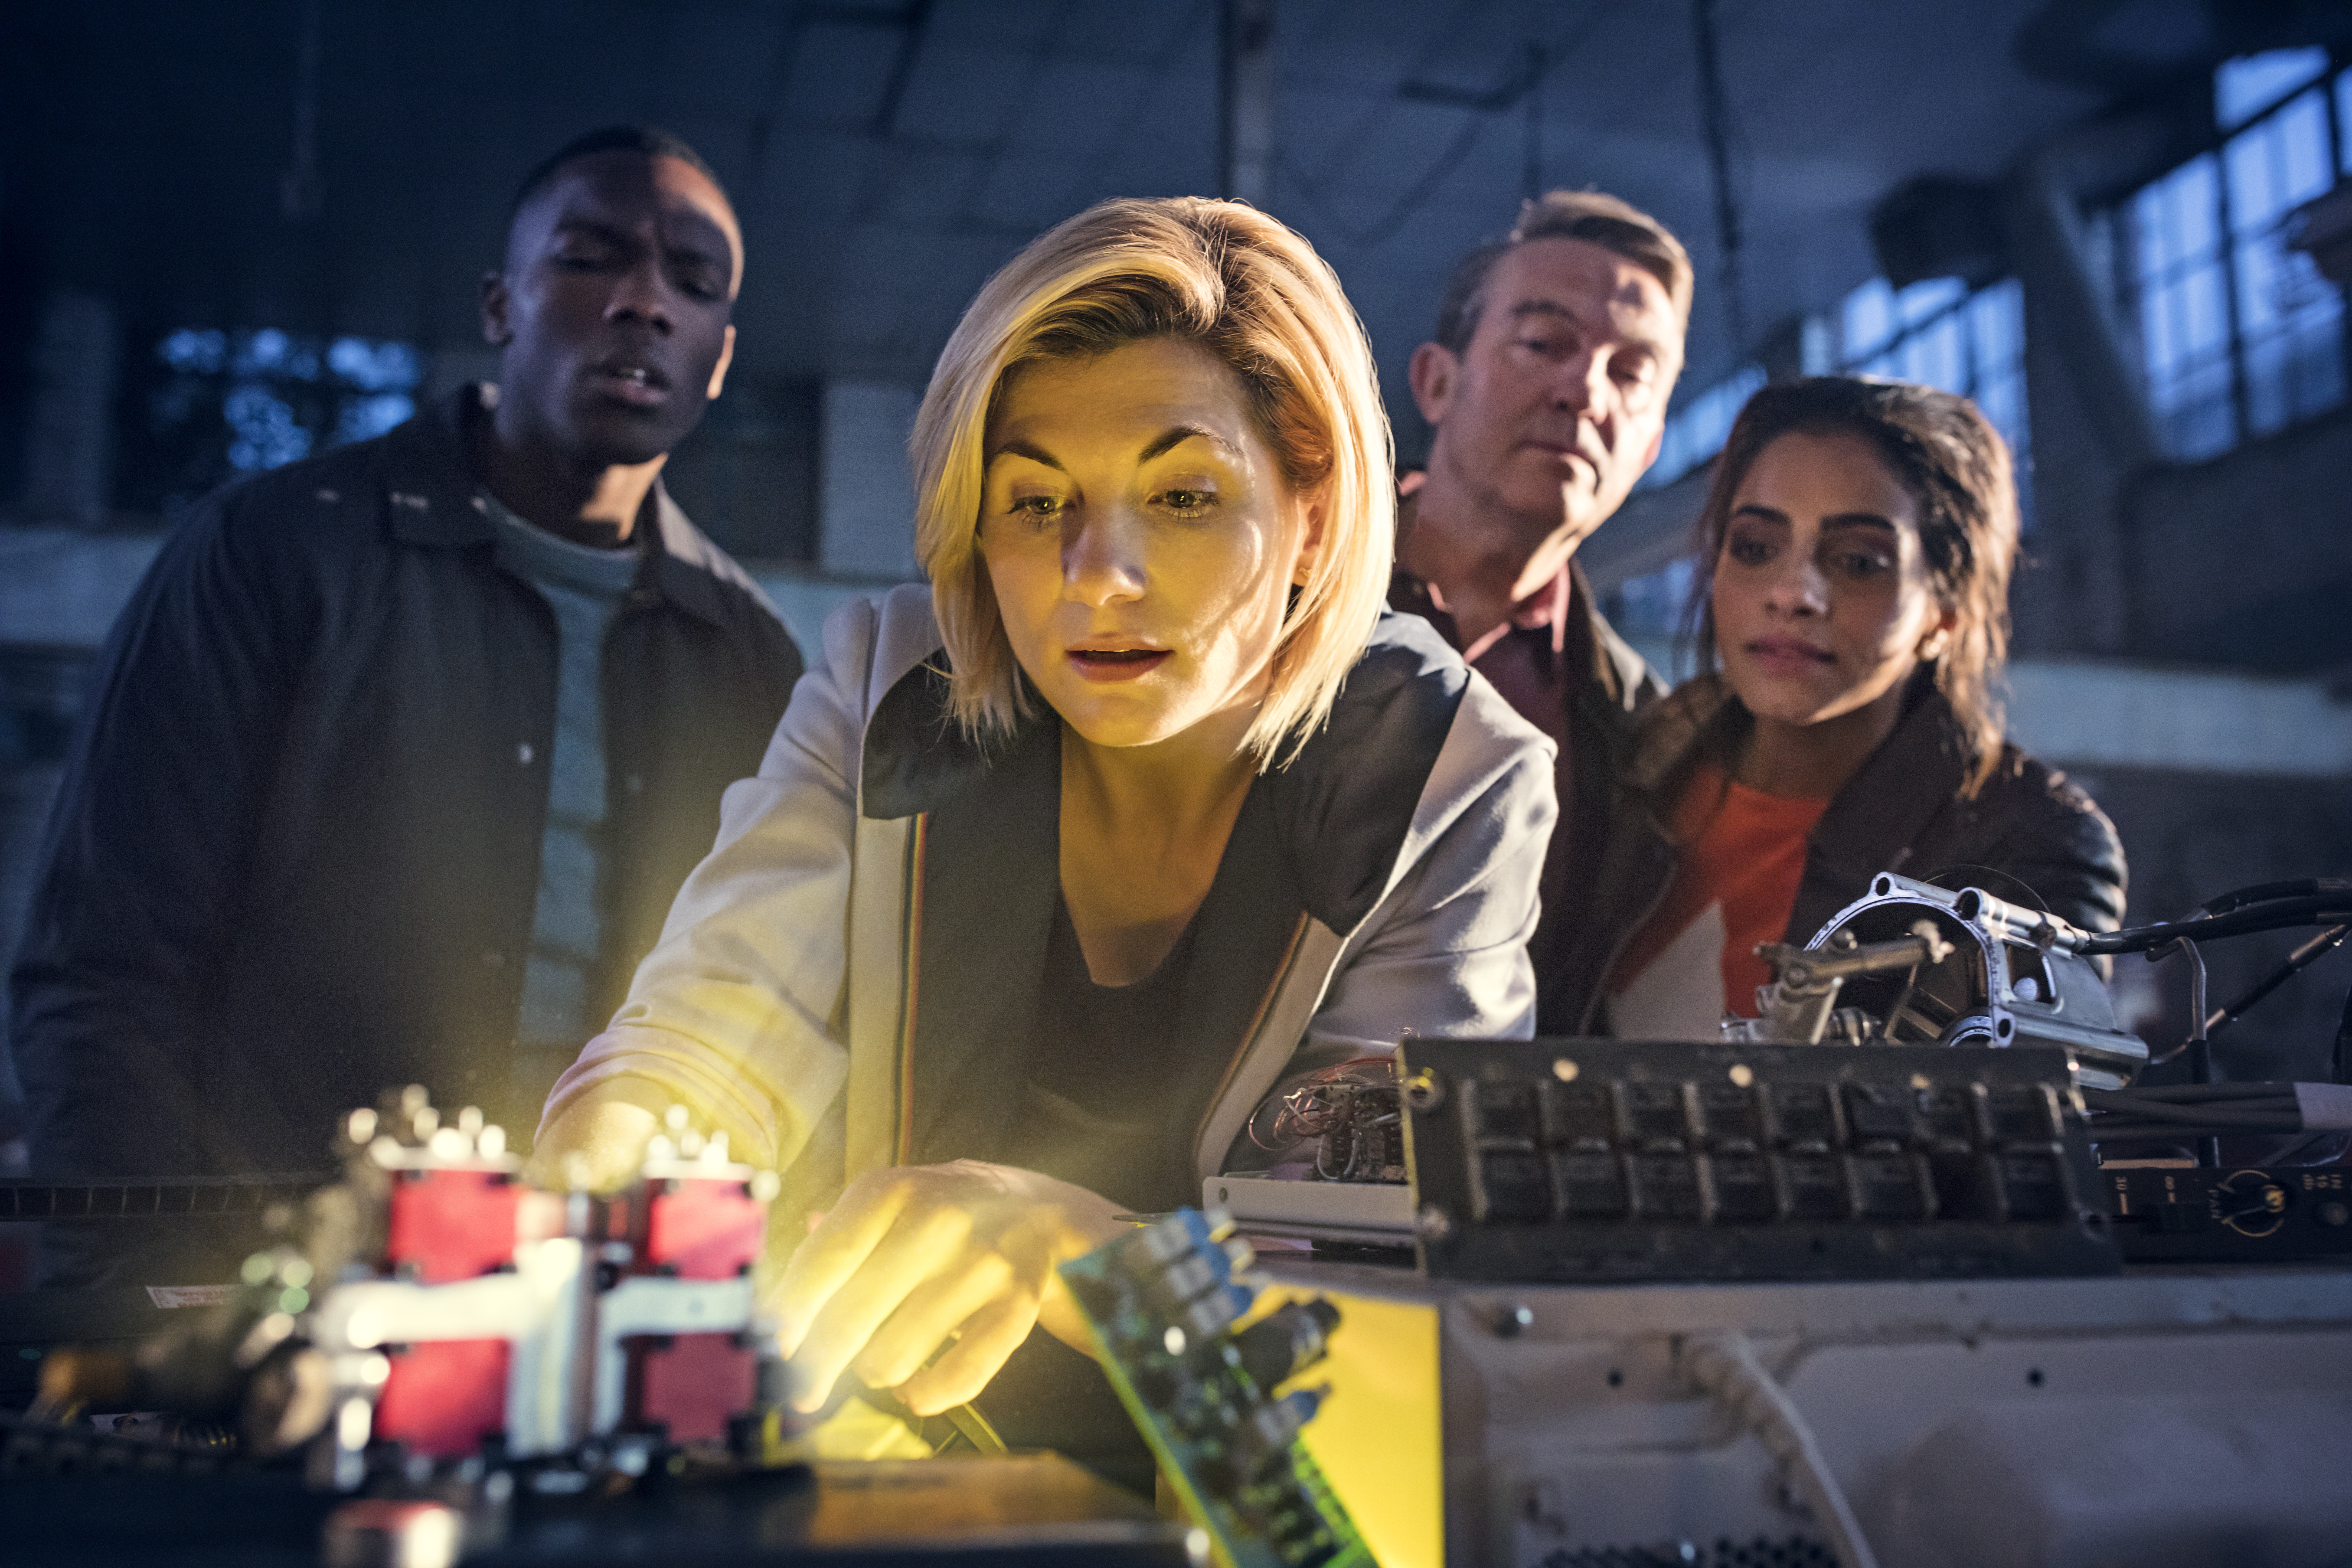 Tosin Cole, Jodie Whittaker, Bradley Walsh and Mandip Gill in Doctor Who